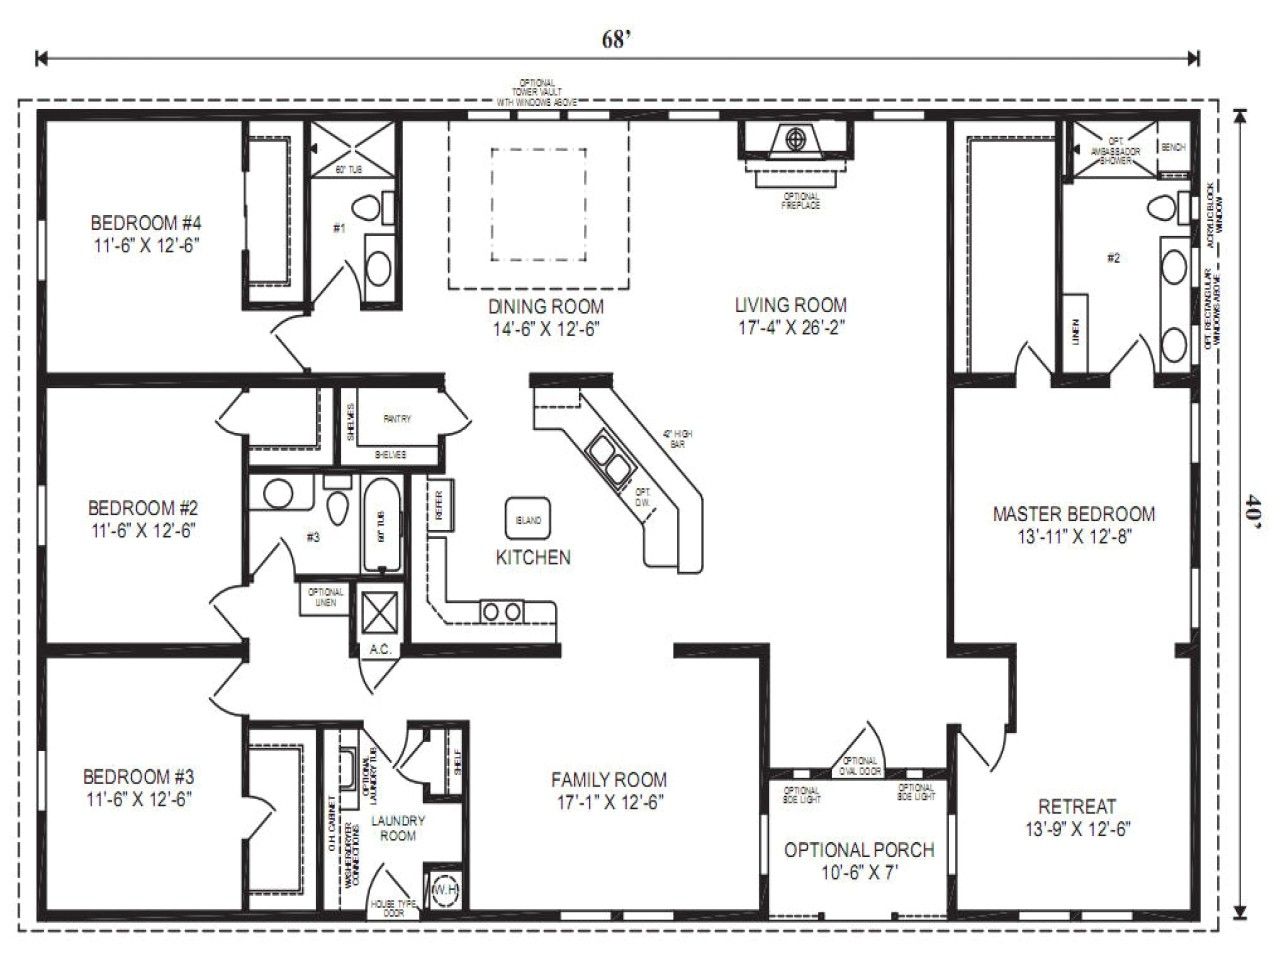 03c77ca8edbed139 mobile modular home floor plans modular homes prices